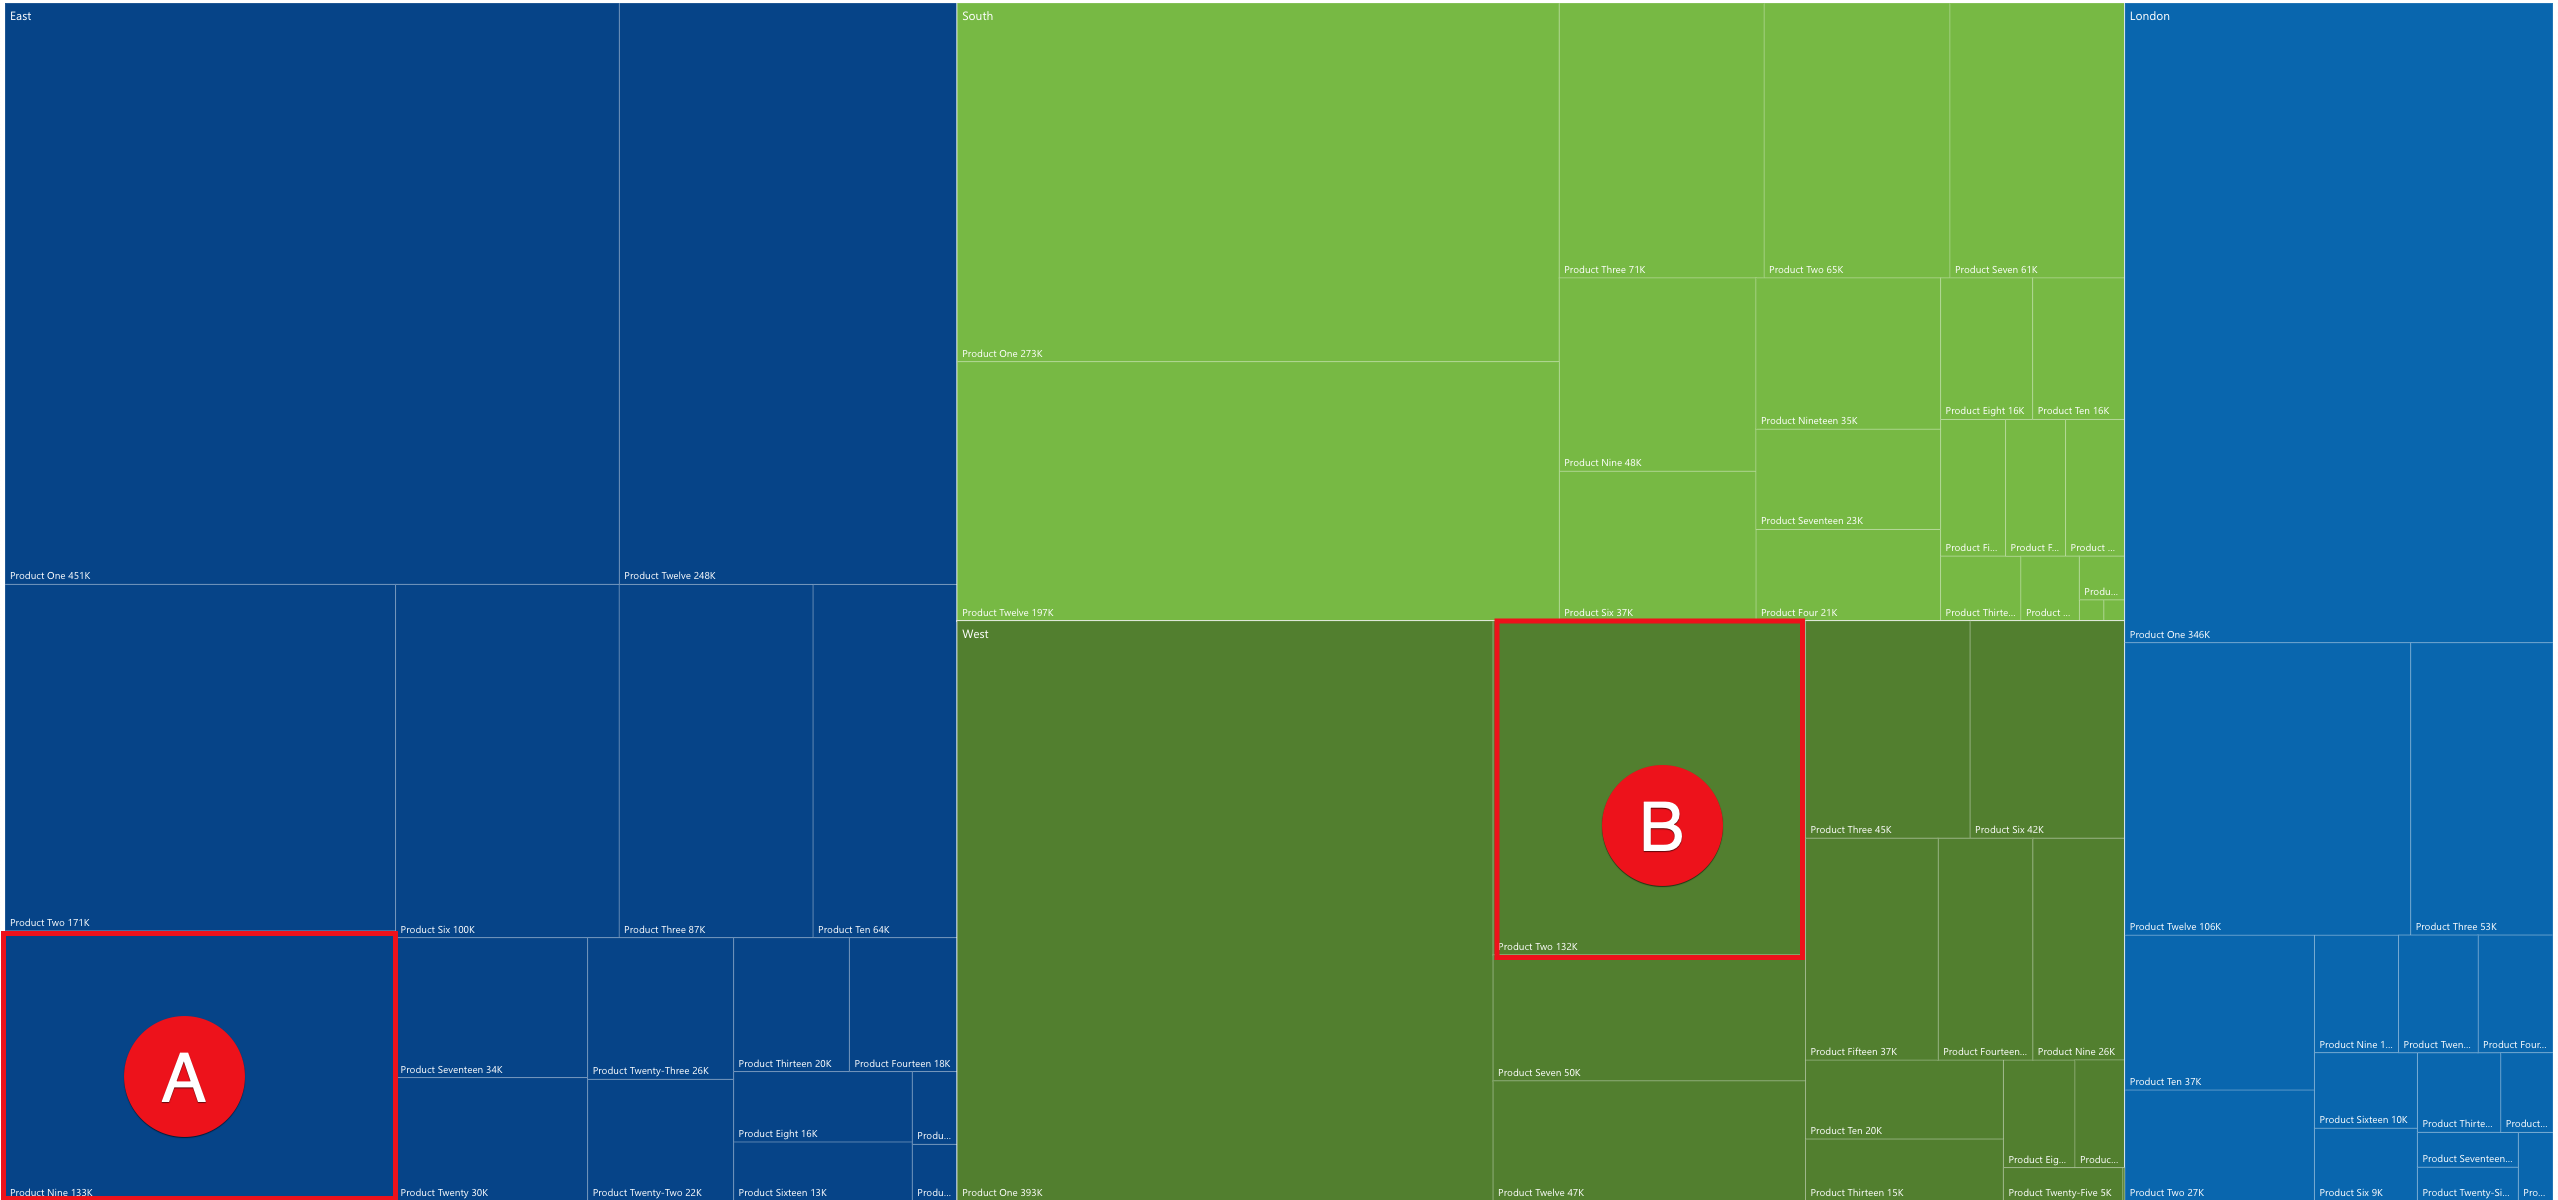 A dashboard treemap zoomed in to show the very similar area of two regions.  This is an example of how treemaps are poor tools for precise comparisons, due to the visual similarity.